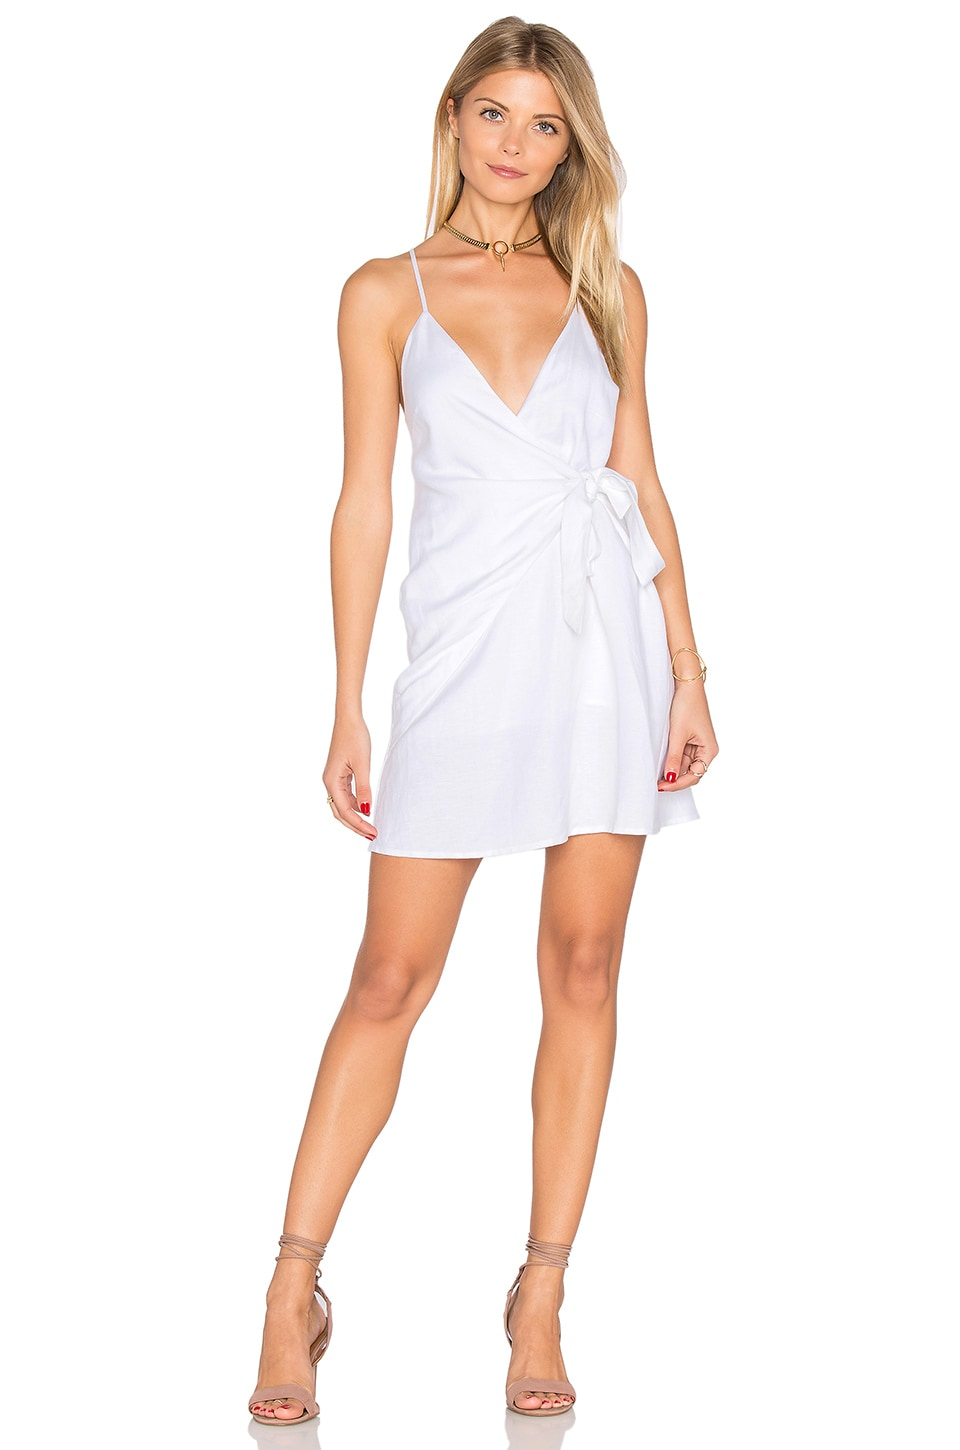 THE JETSET DIARIES Turismo Wrap Dress in Ivory